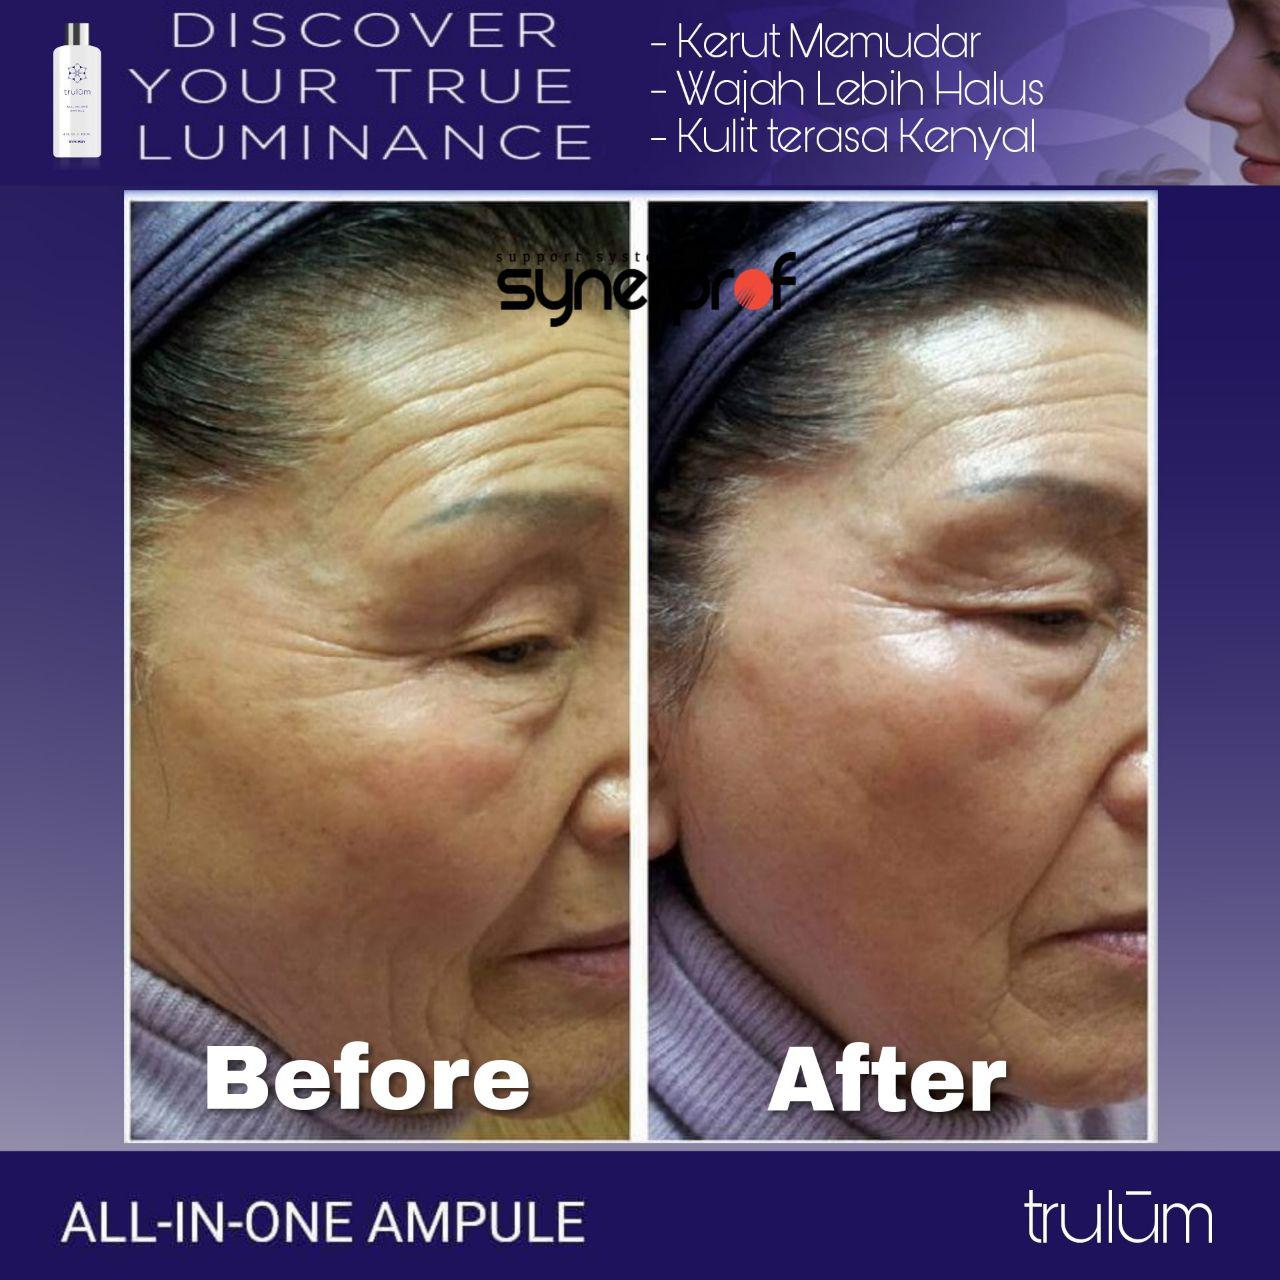 Jual Trulum All In One Ampoule Di Kaliwedi WA: 08112338376